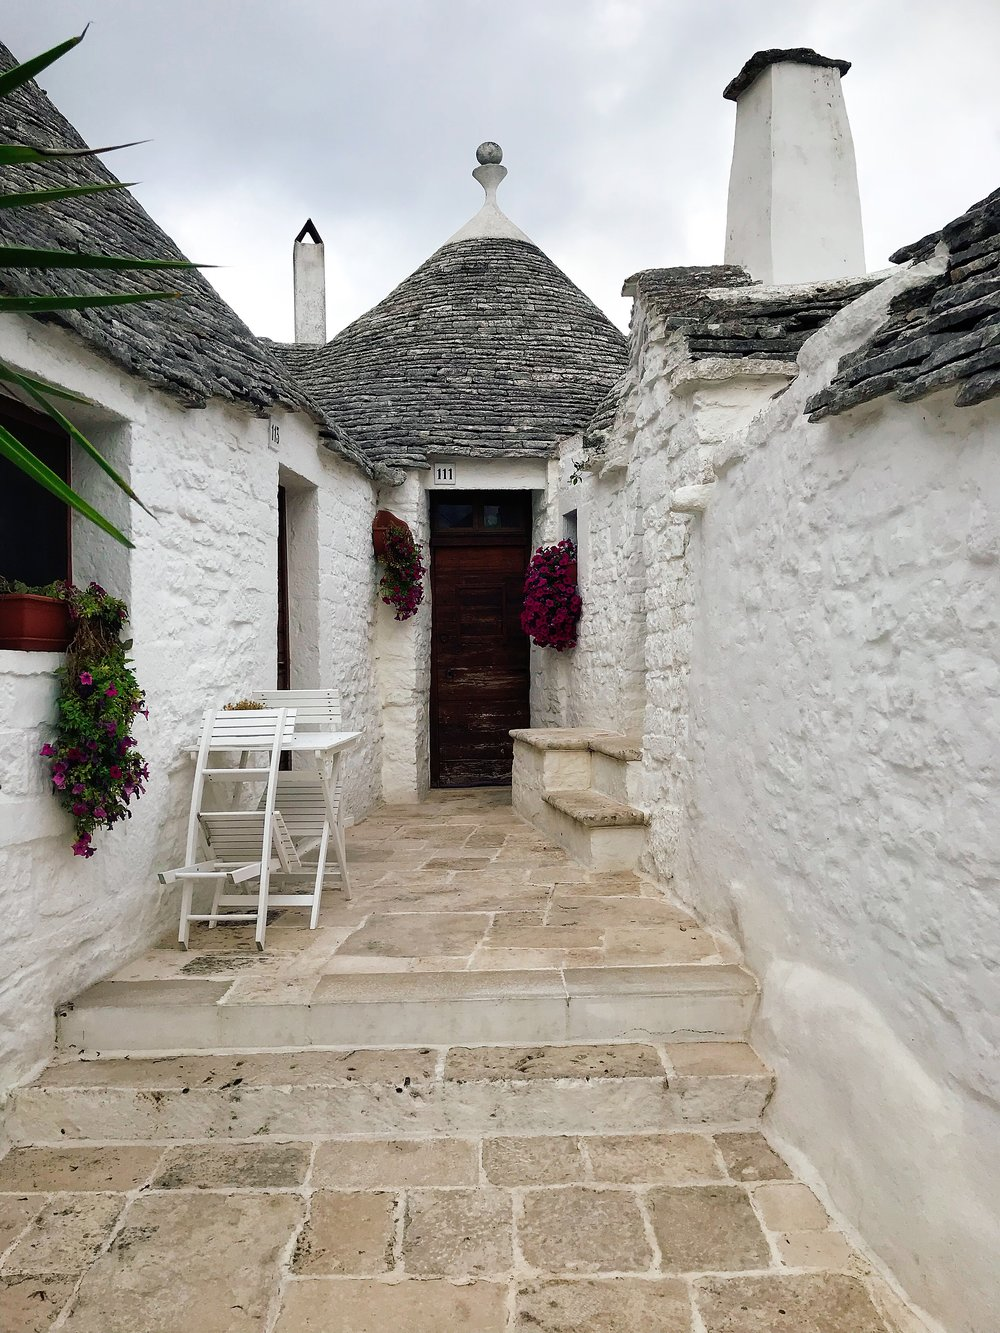 Alberobello- Doesn't this look like something out of a fairytale?